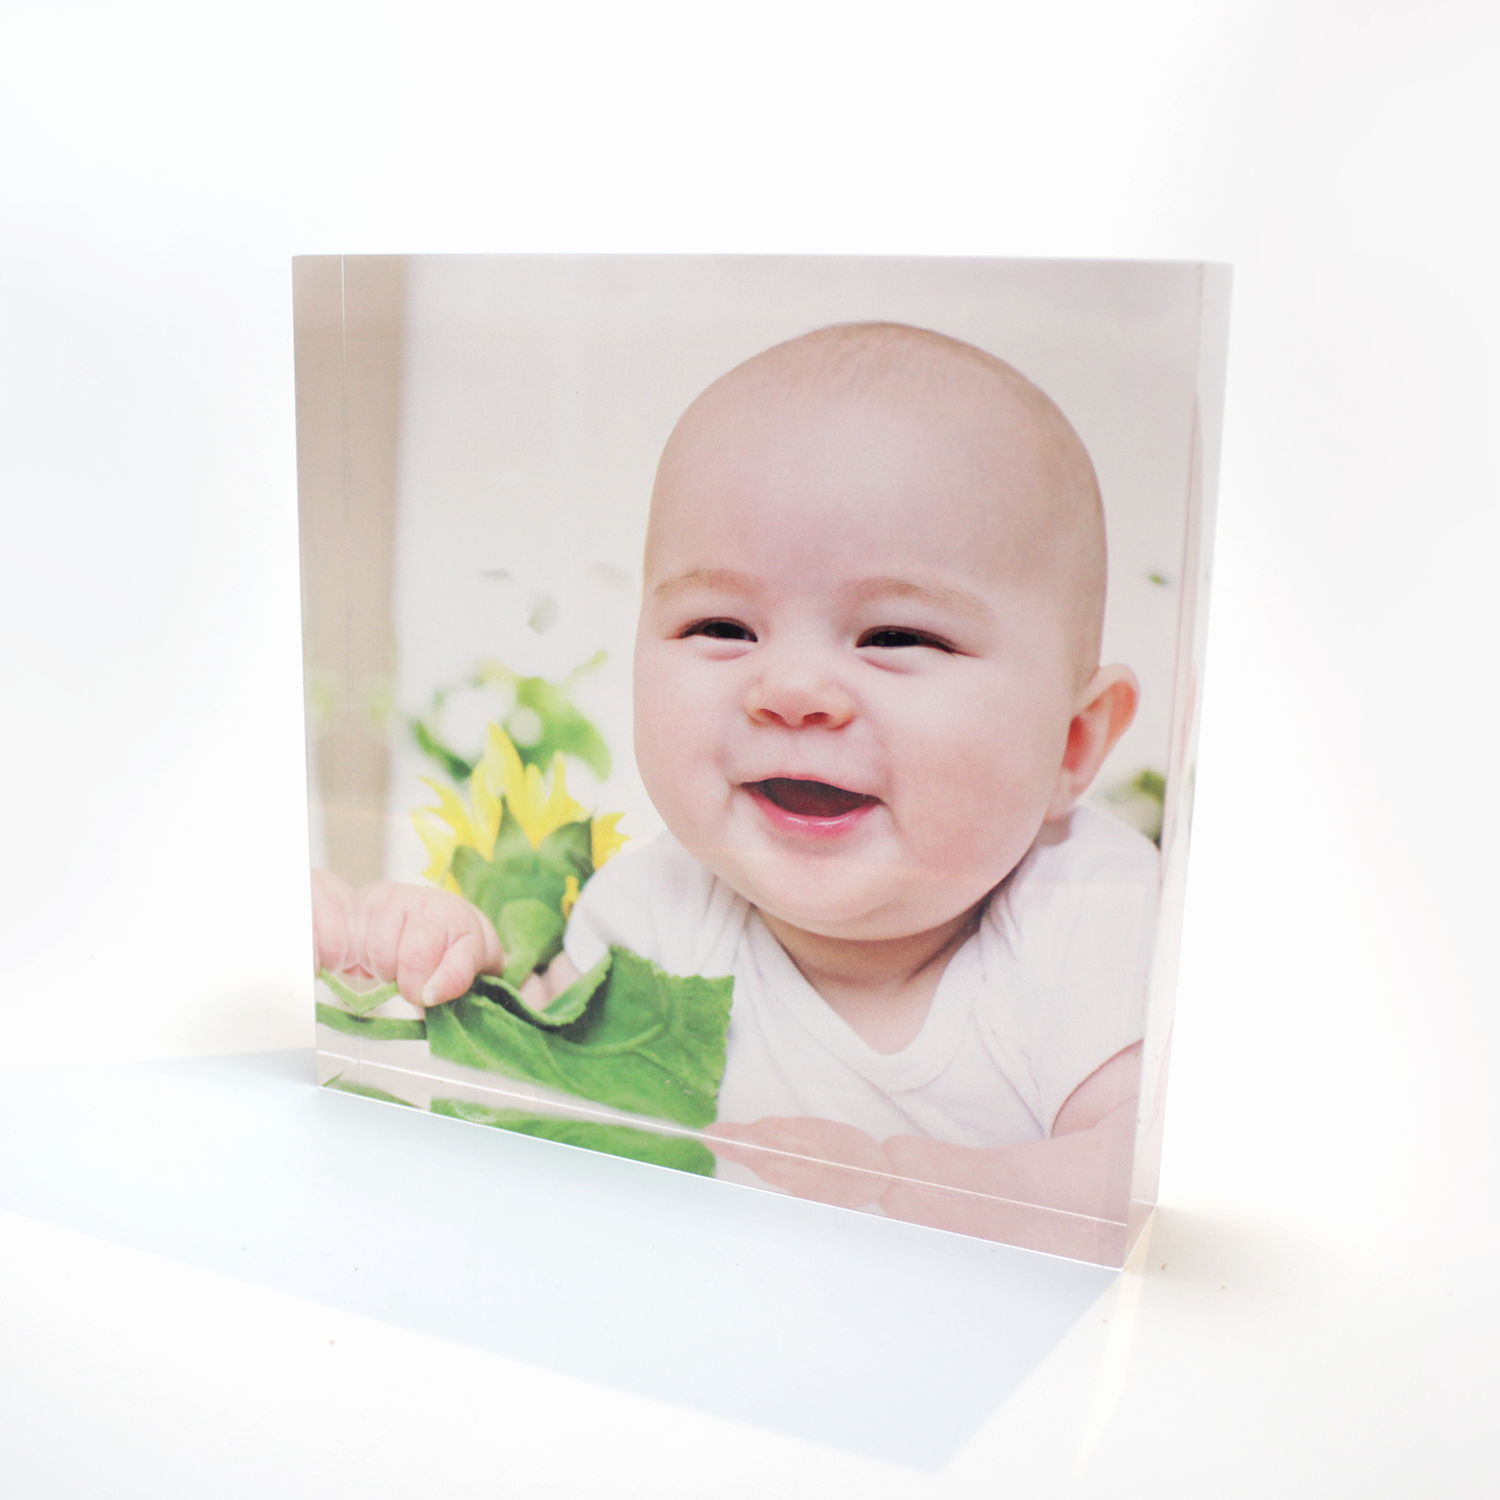 Acrylic Photo Block 120 x 120mm